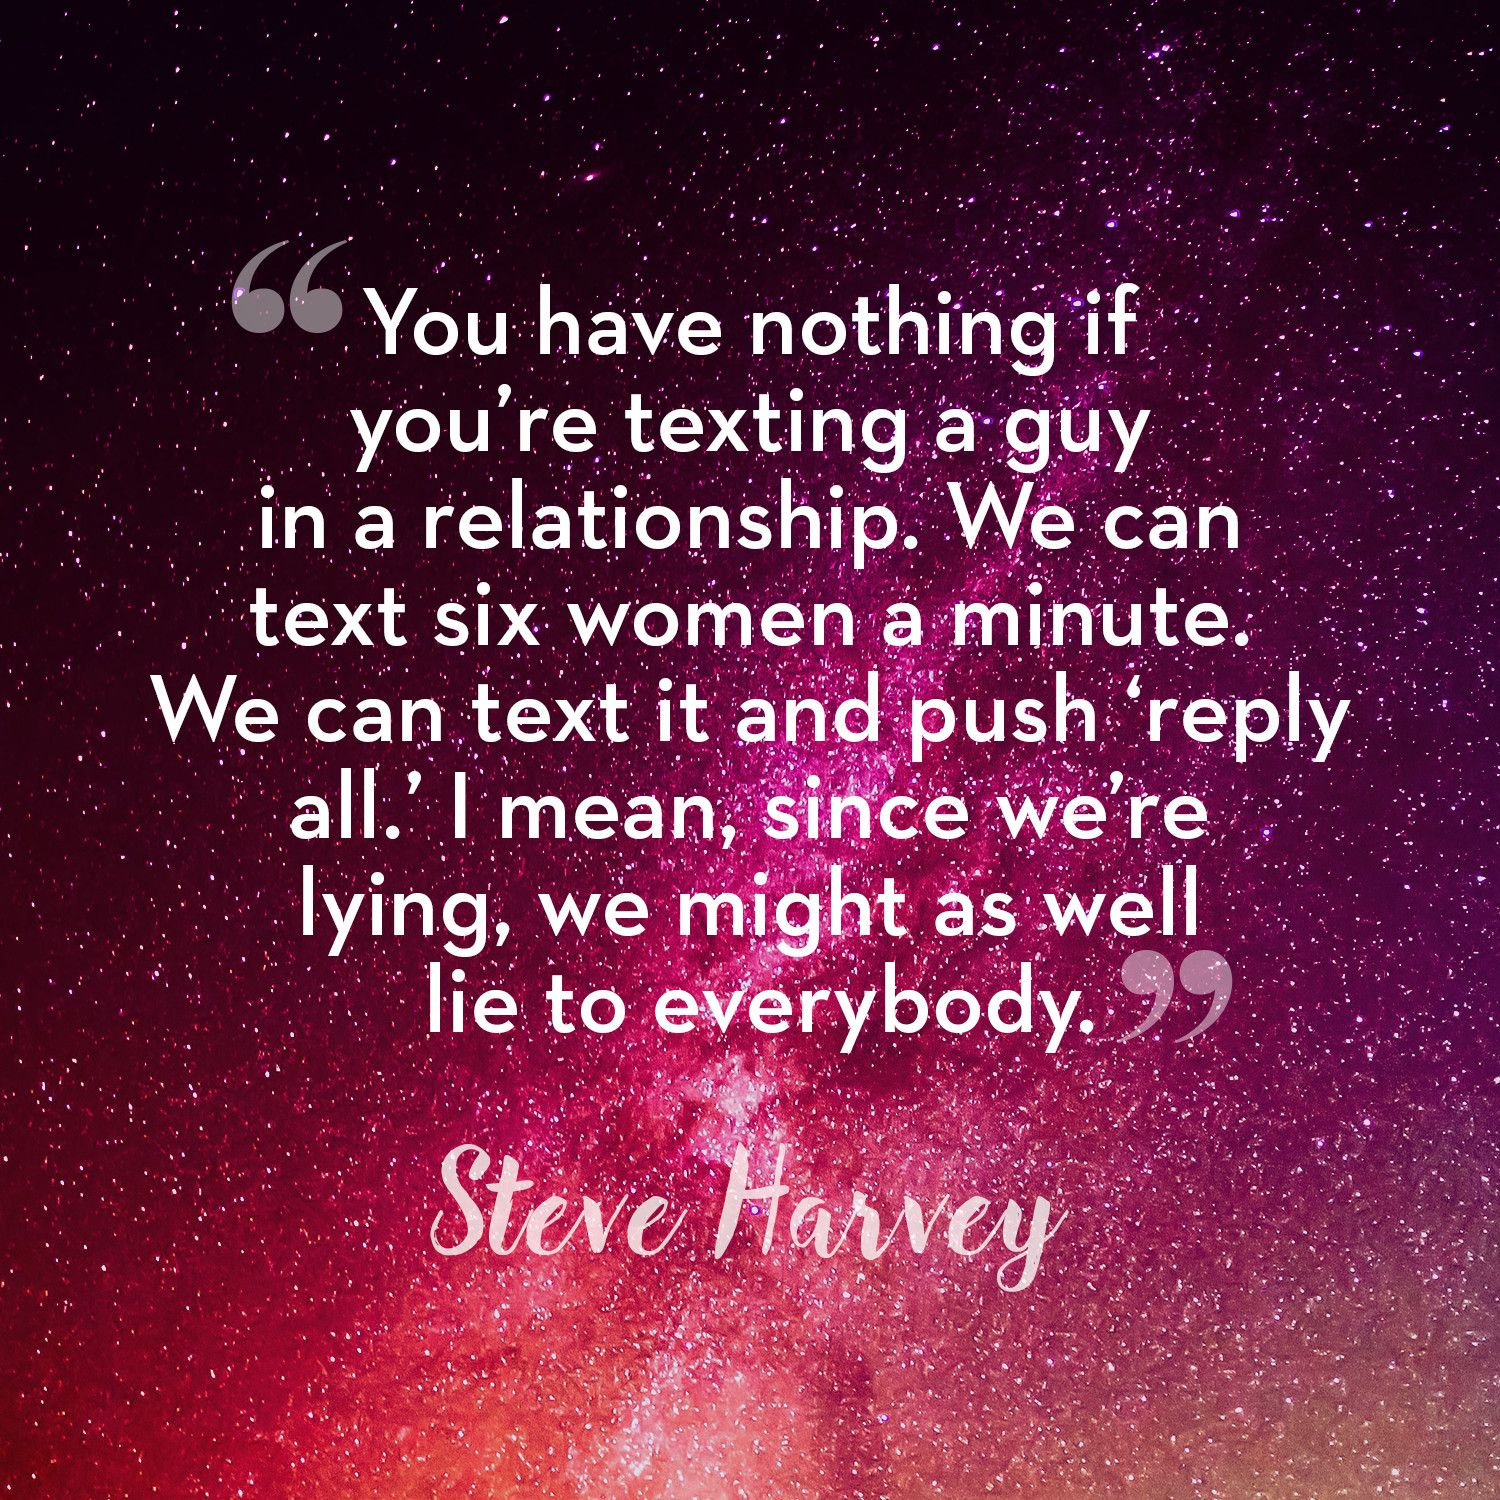 Steve harvey relationship advice for men